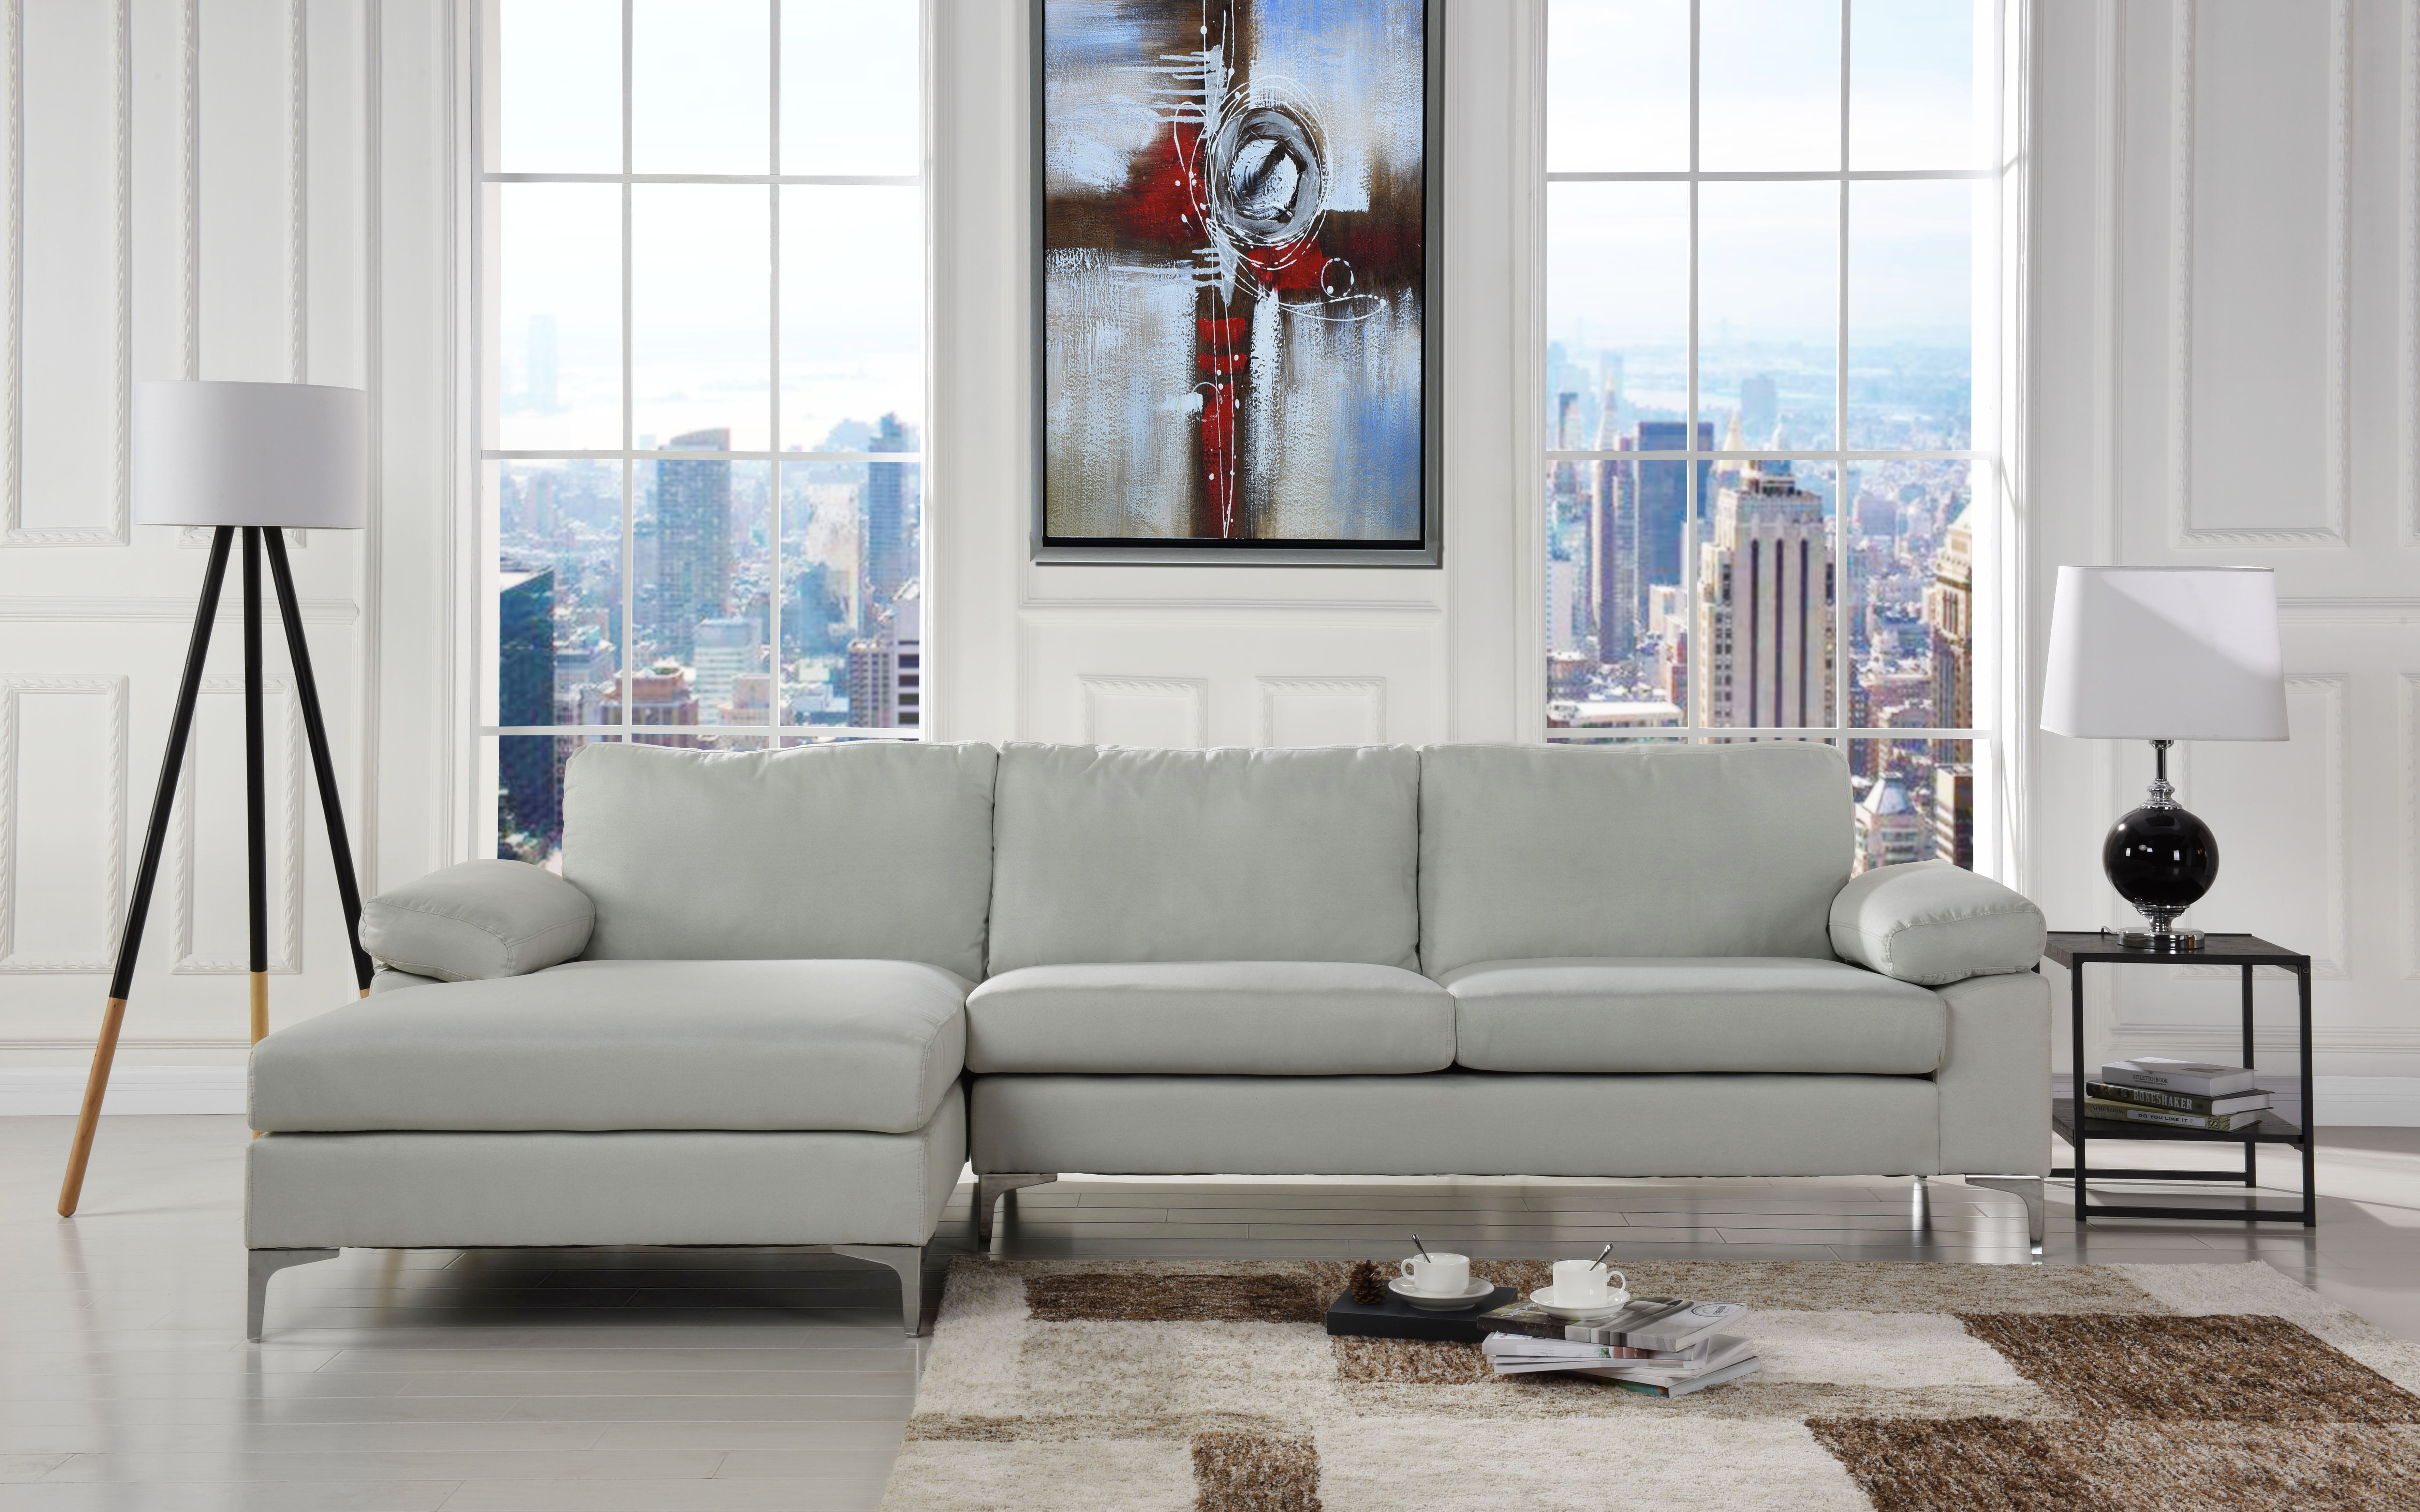 modern large linen fabric sectional sofa lshape couch with extra wide chaise lounge